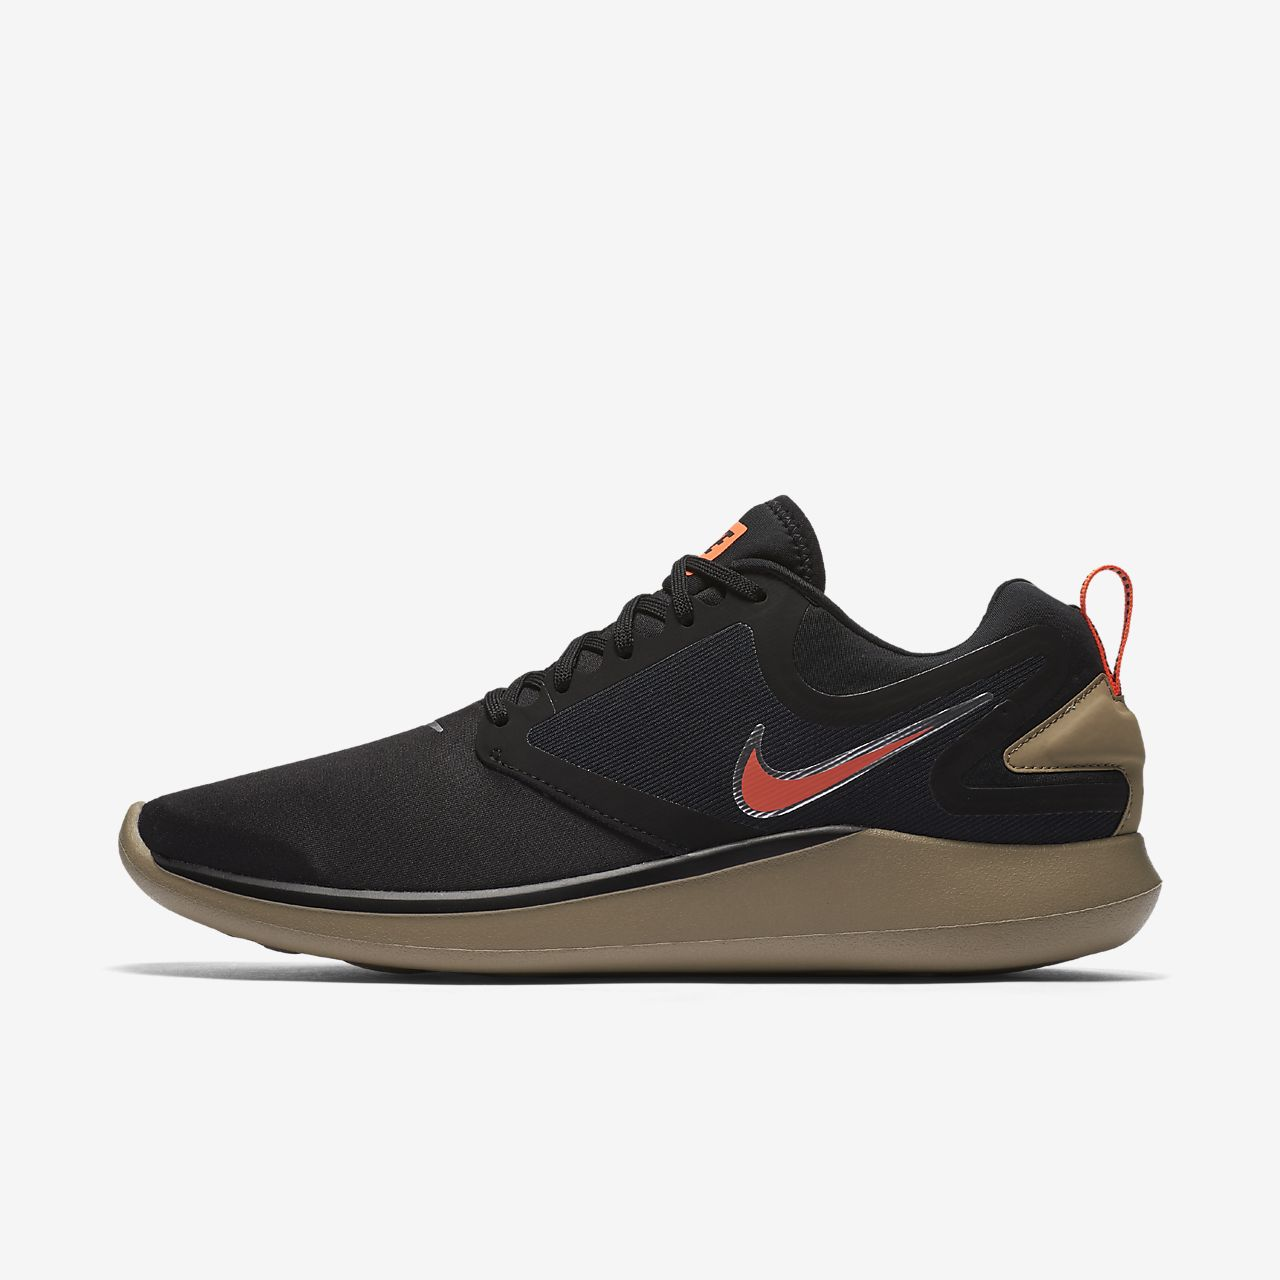 Low Resolution Nike LunarSolo Men's Running Shoe Nike LunarSolo Men's  Running Shoe